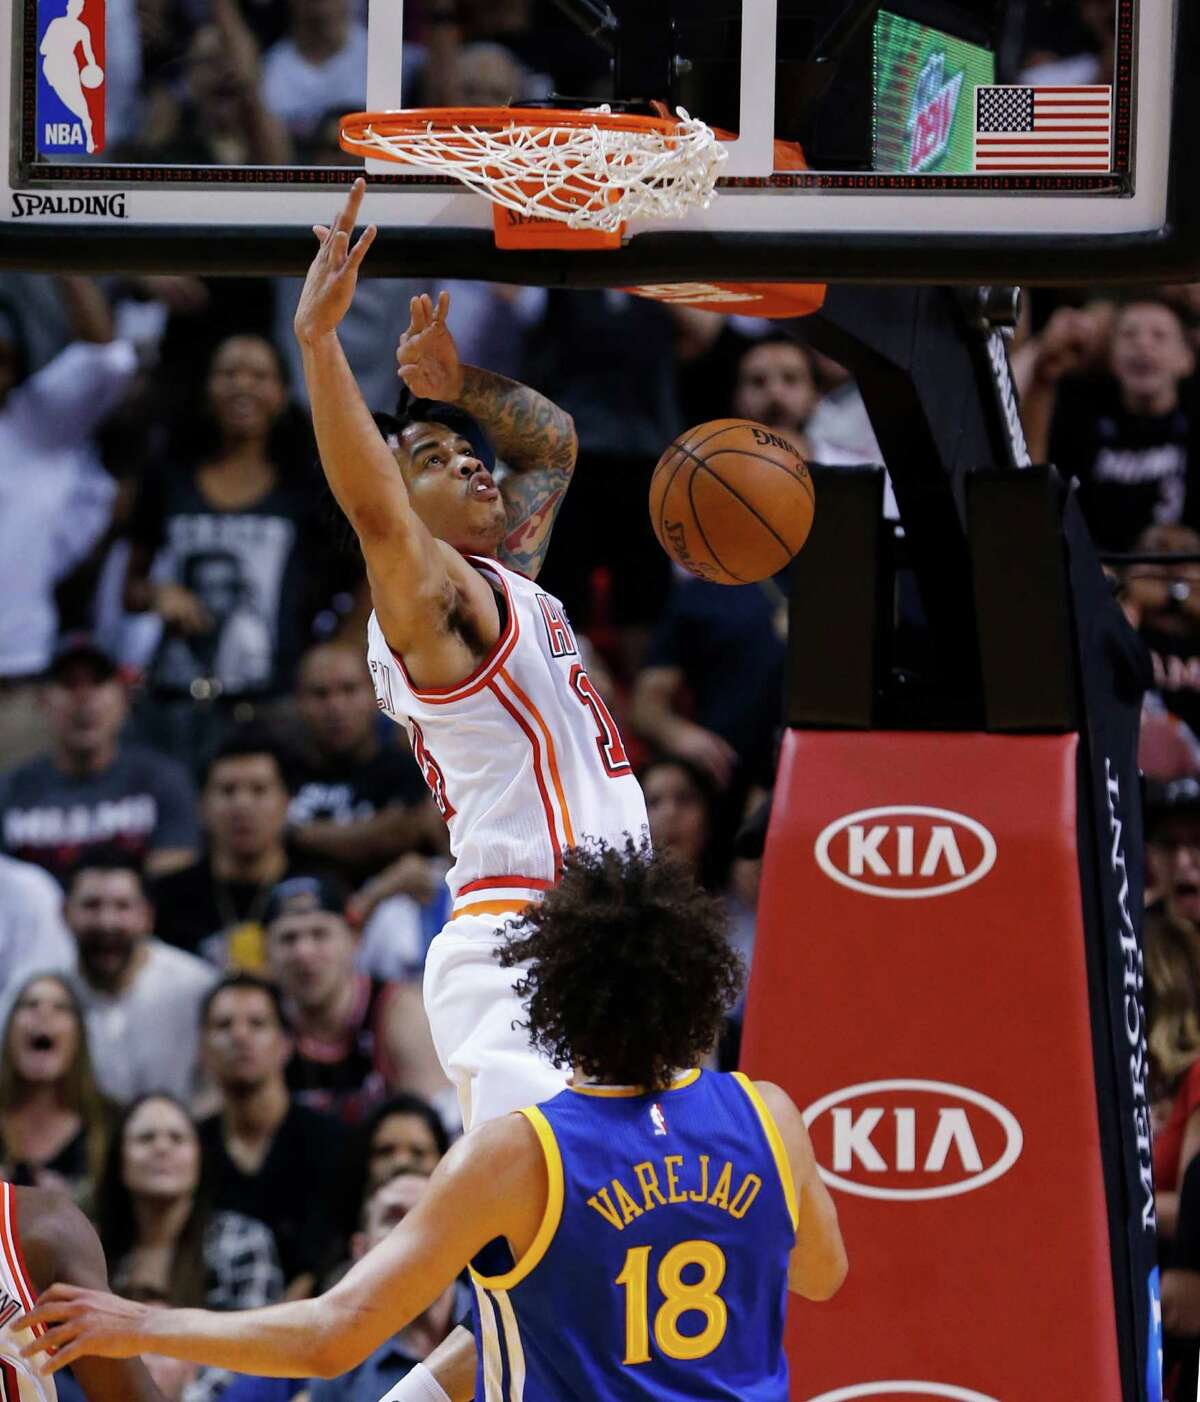 Miami Heat guard Gerald Green dunks against Golden State Warriors center Anderson Varejao (18) during the first half of an NBA basketball game Wednesday, Feb. 24, 2016, in Miami.